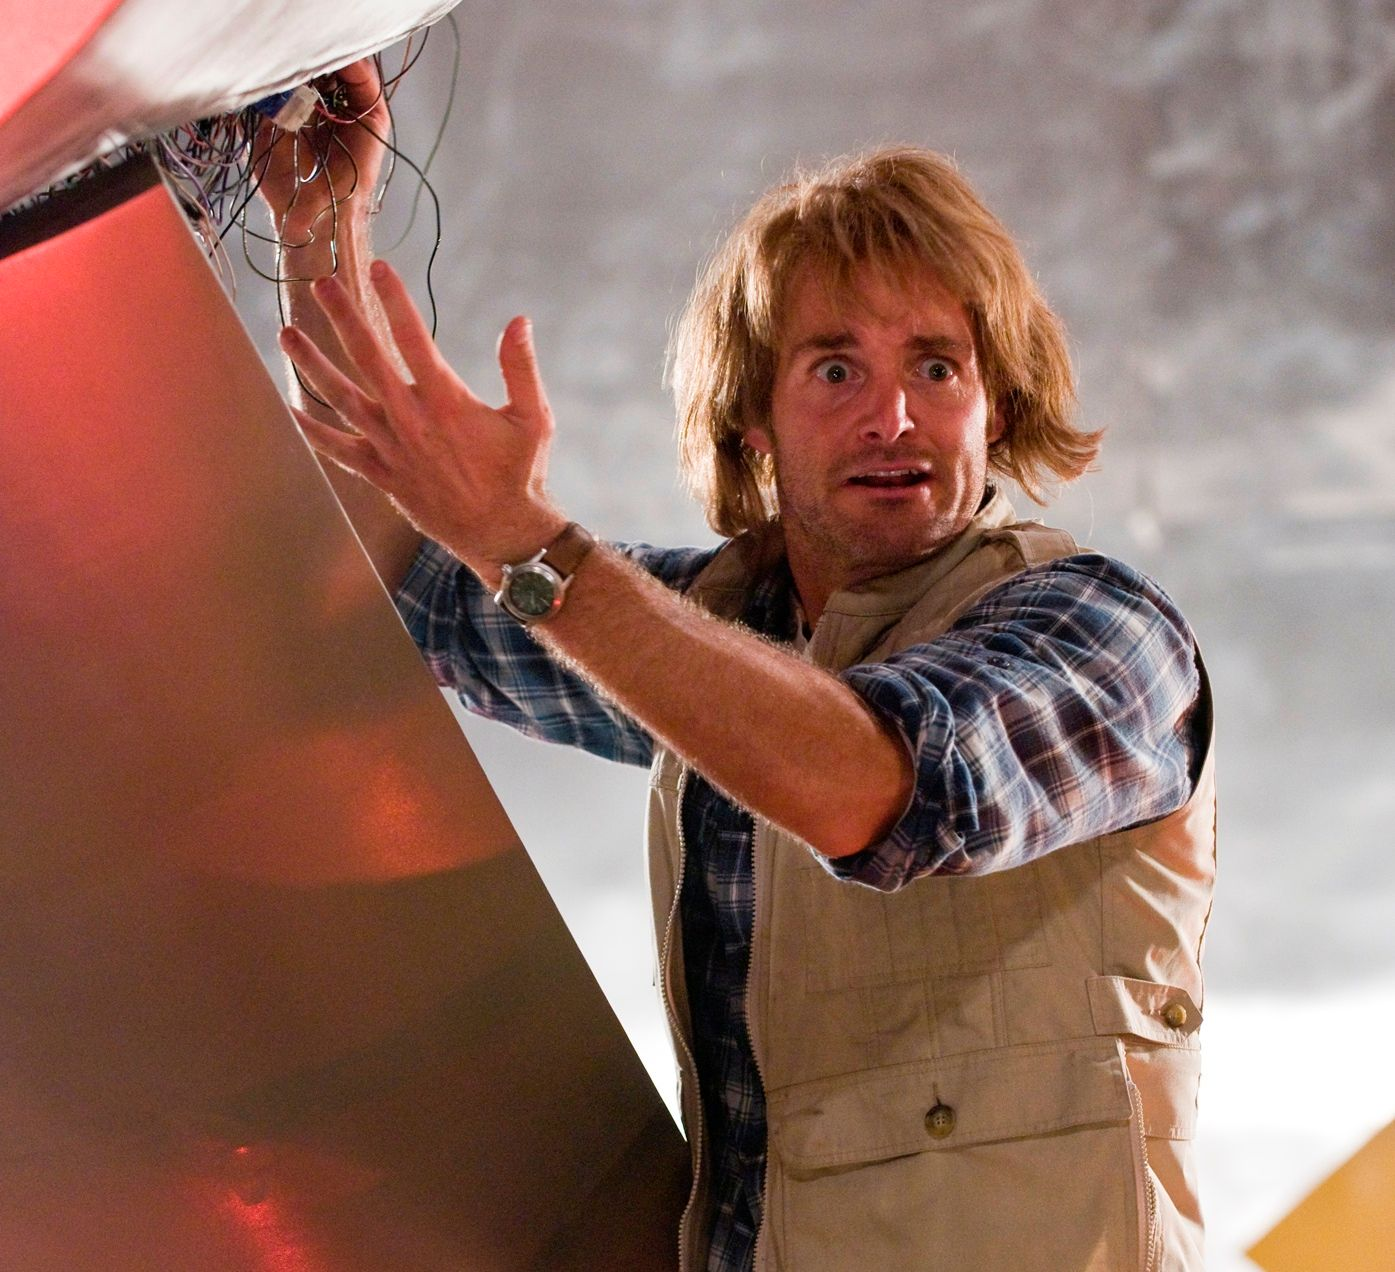 MacGruber 2 Update: Will Forte Talks Script Progress ...